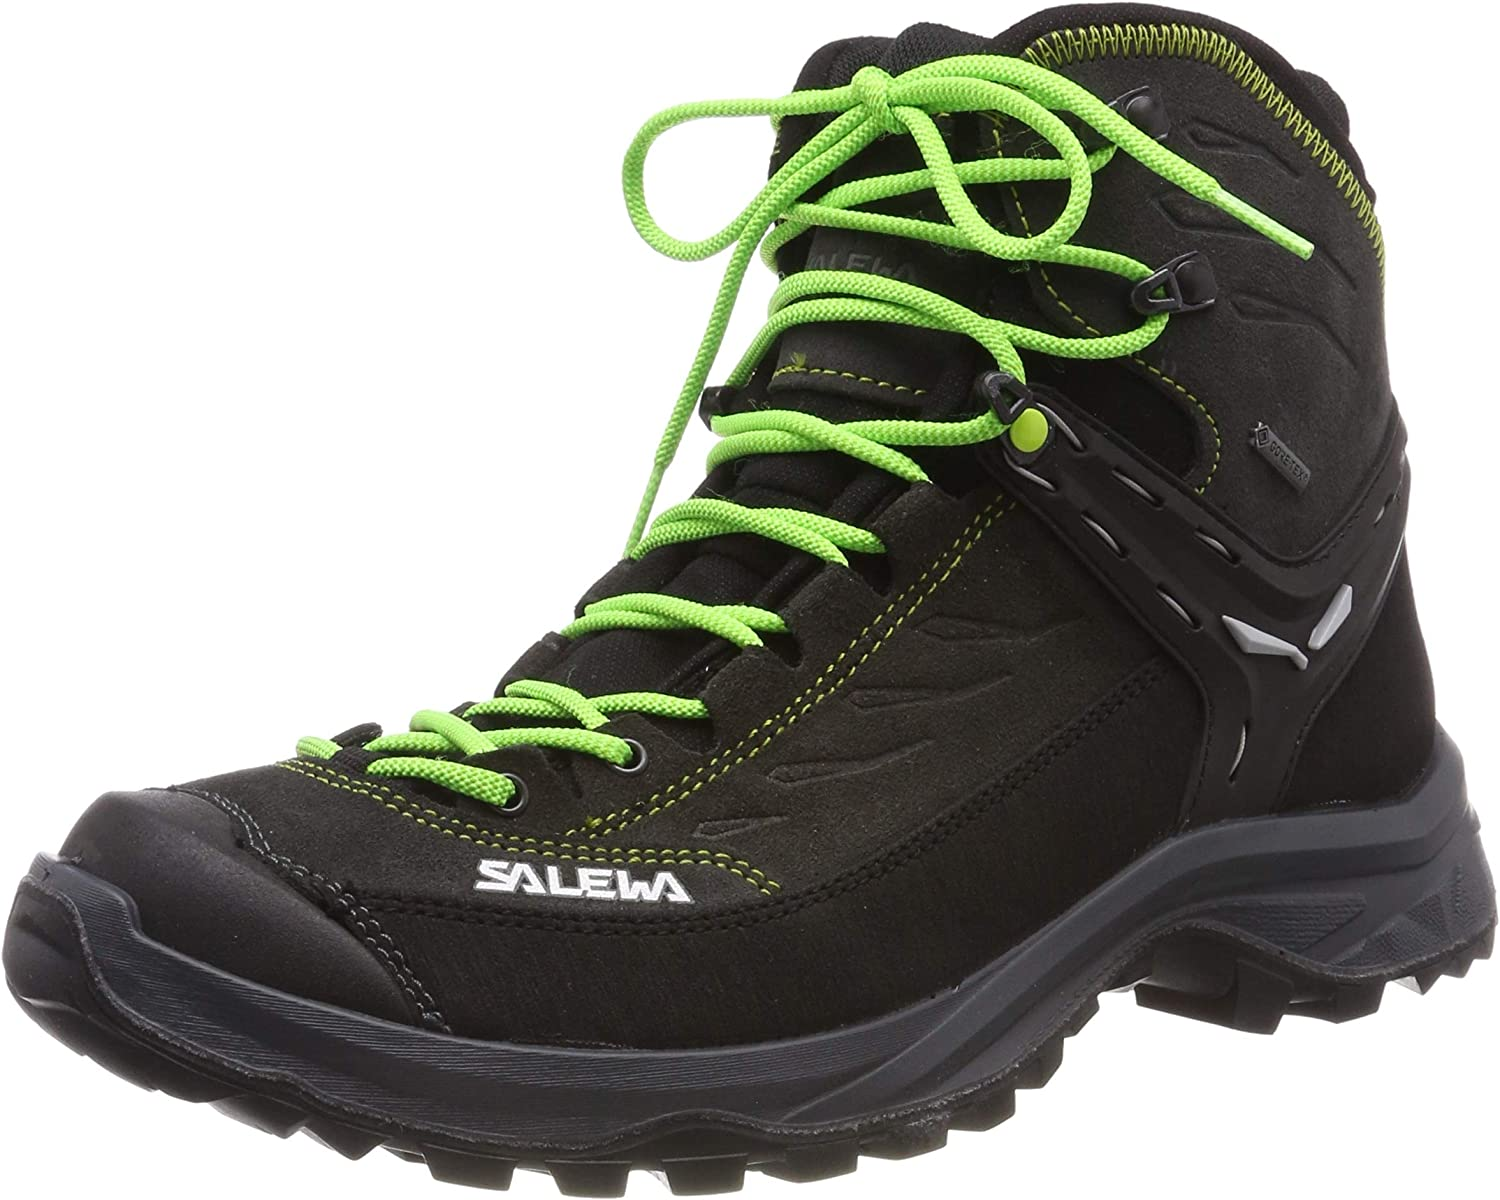 SALEWA Ms Hike Trainer Mid GTX Zapatos de High Rise Senderismo para Hombre